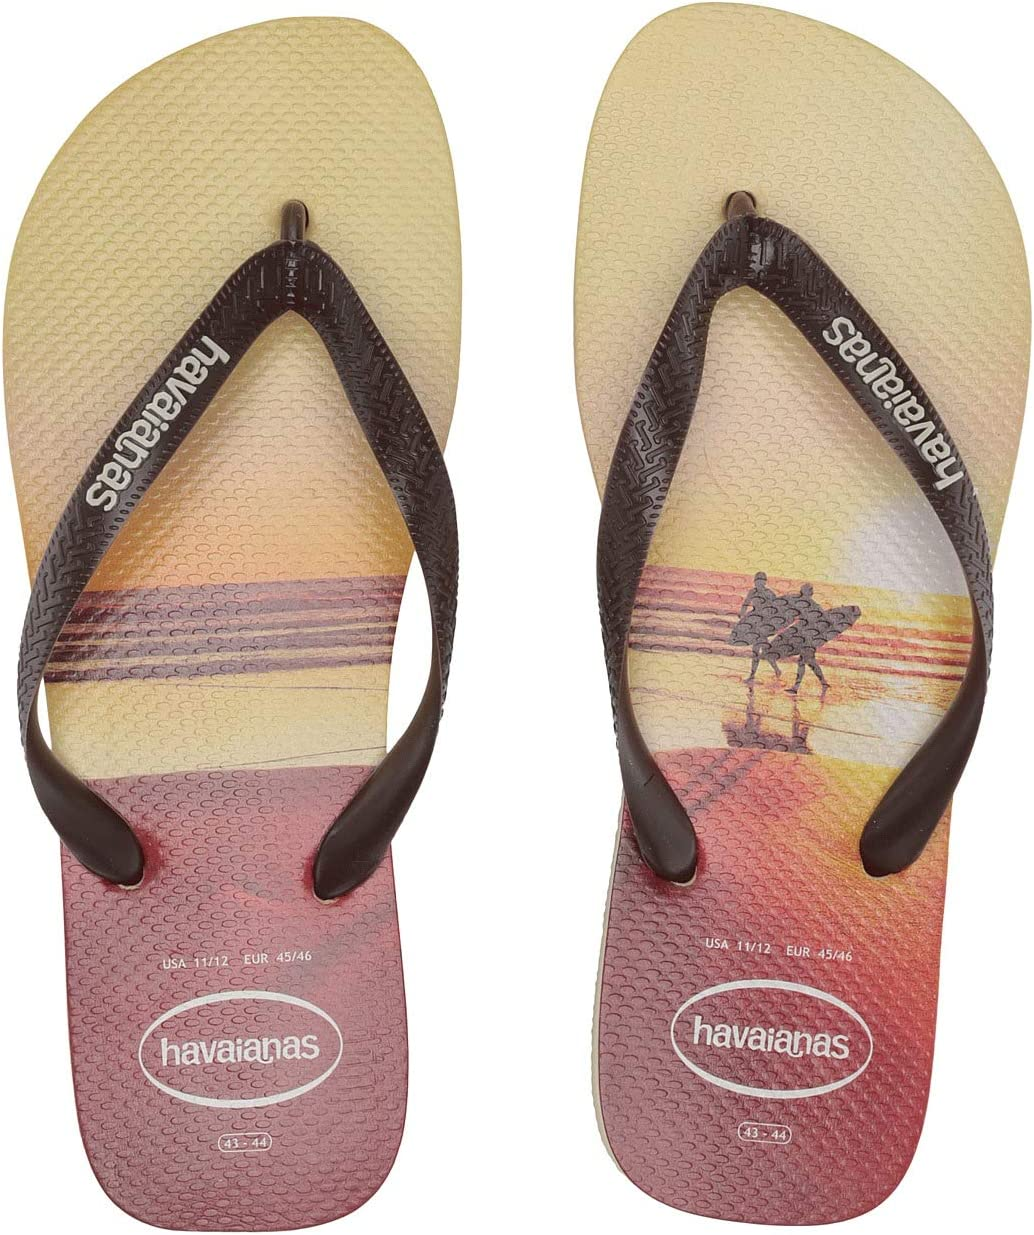 984dcd0632856b Havaianas Shoes   Accessories